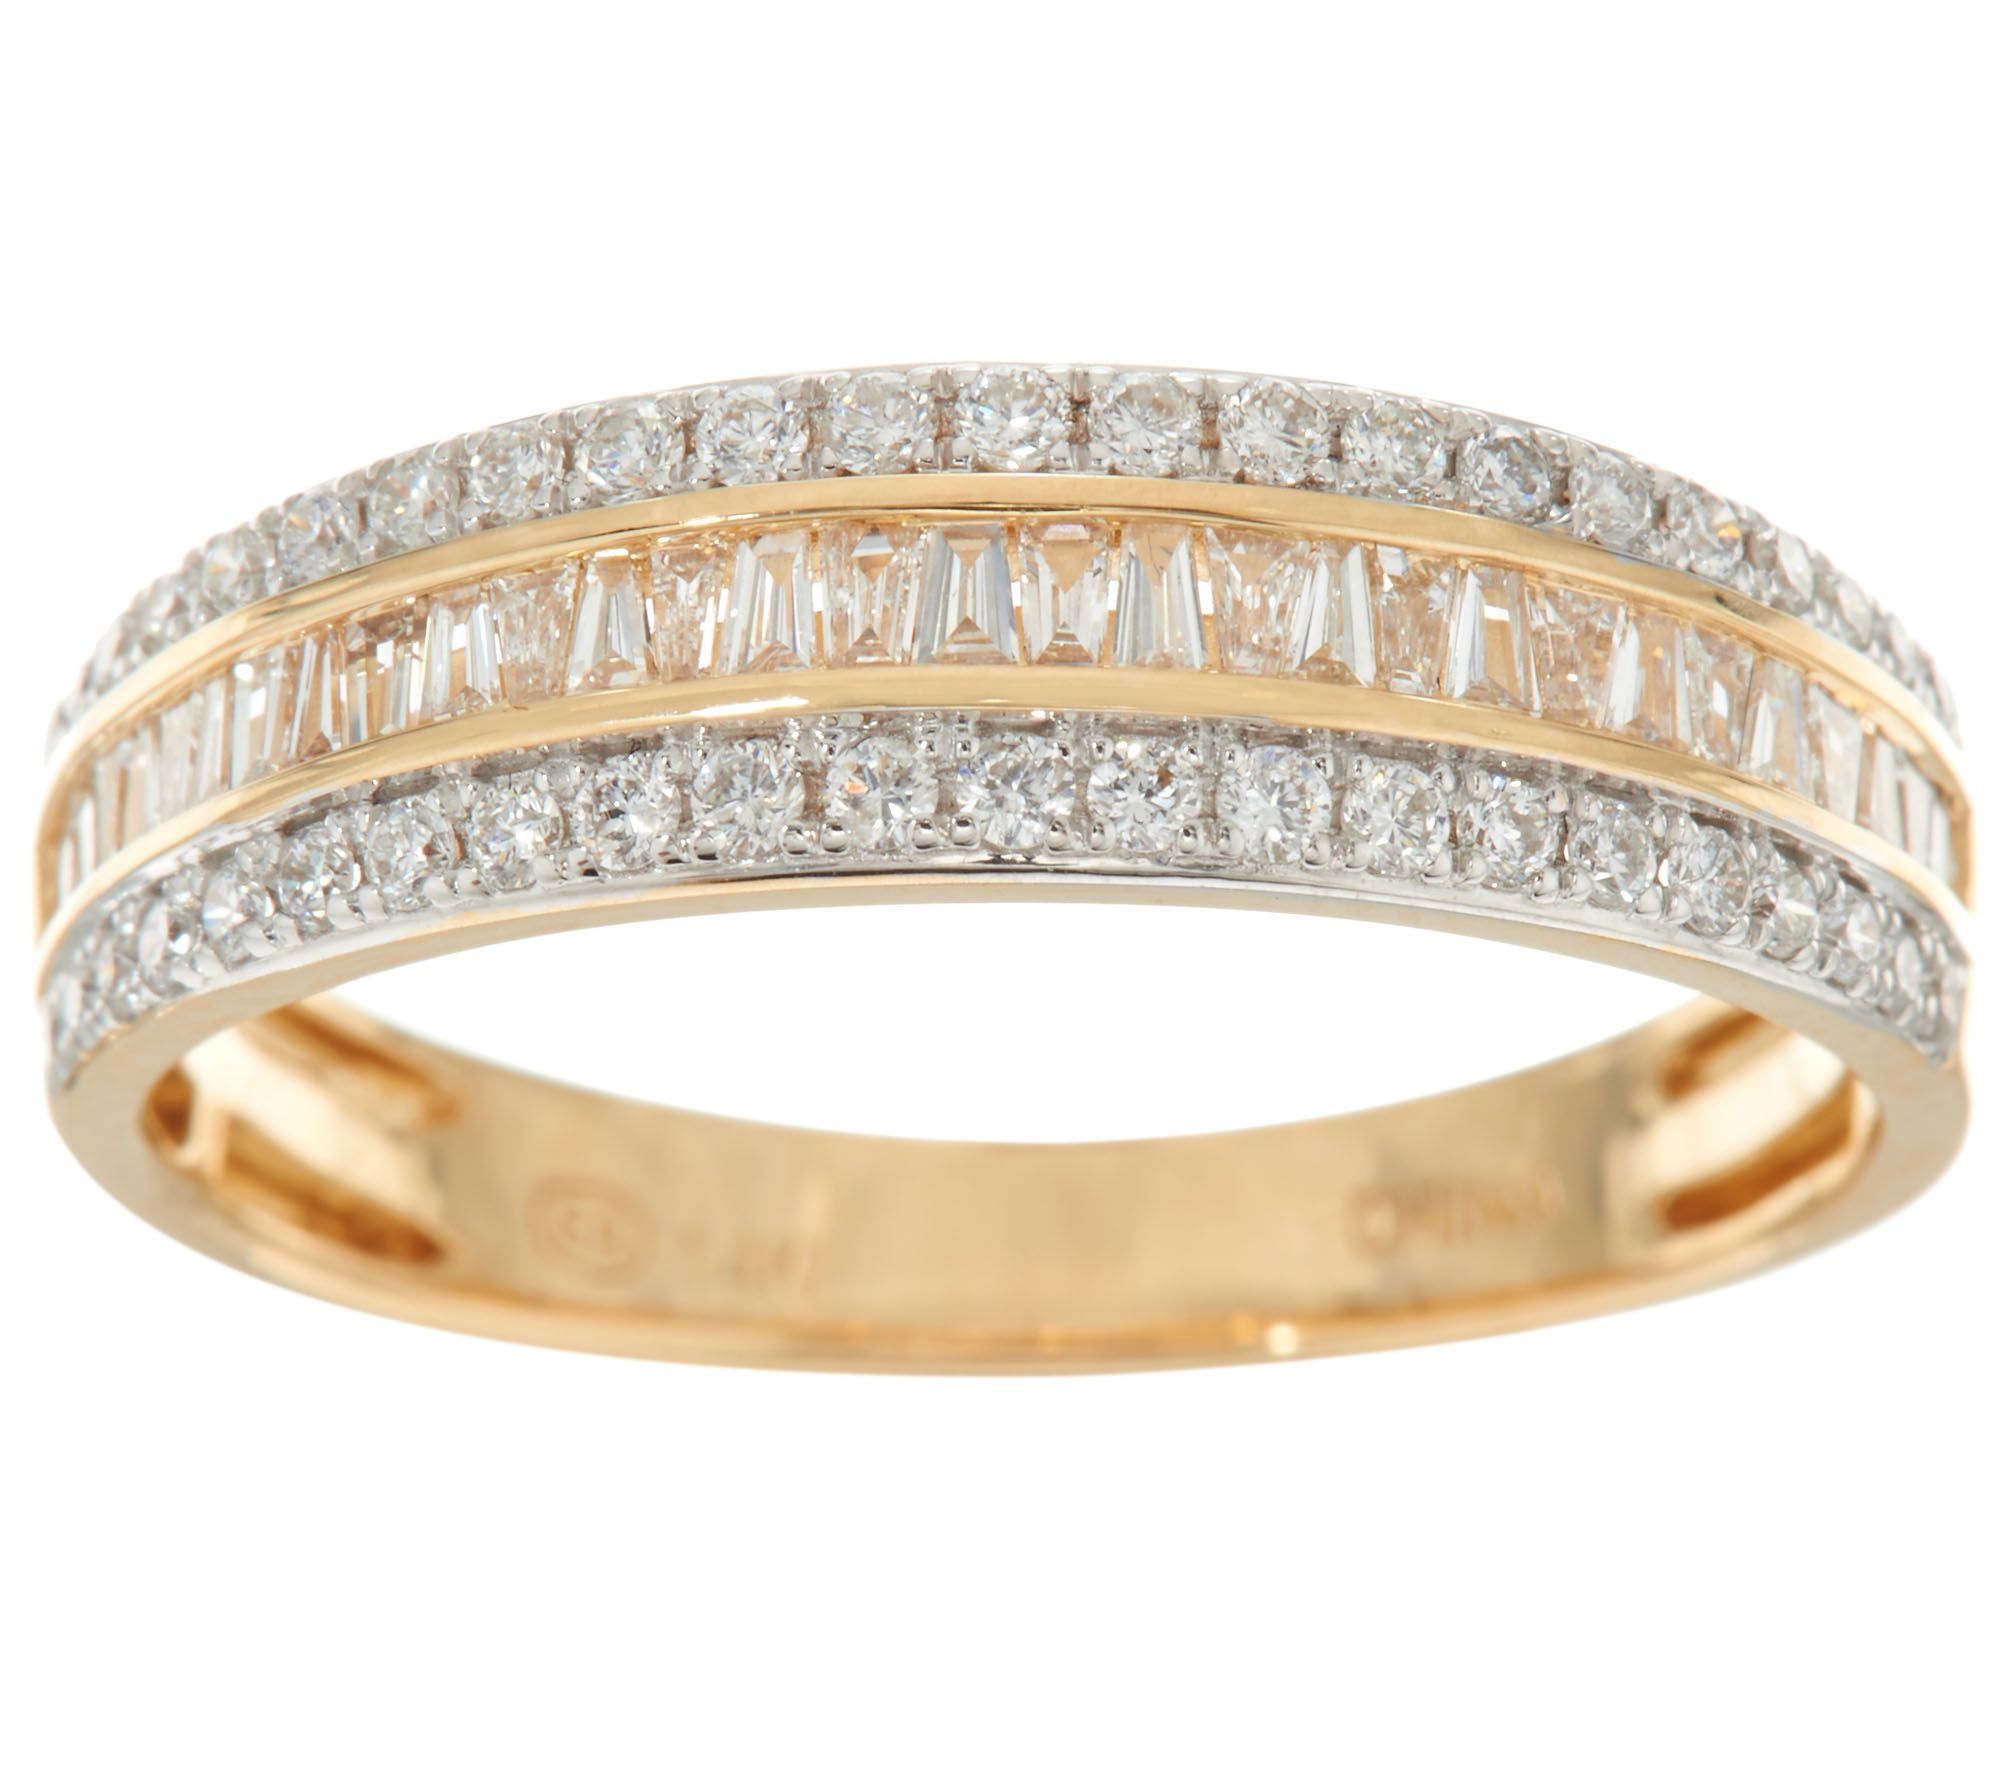 ben diamond jeweler multi ring bridge crossover jewelry bands